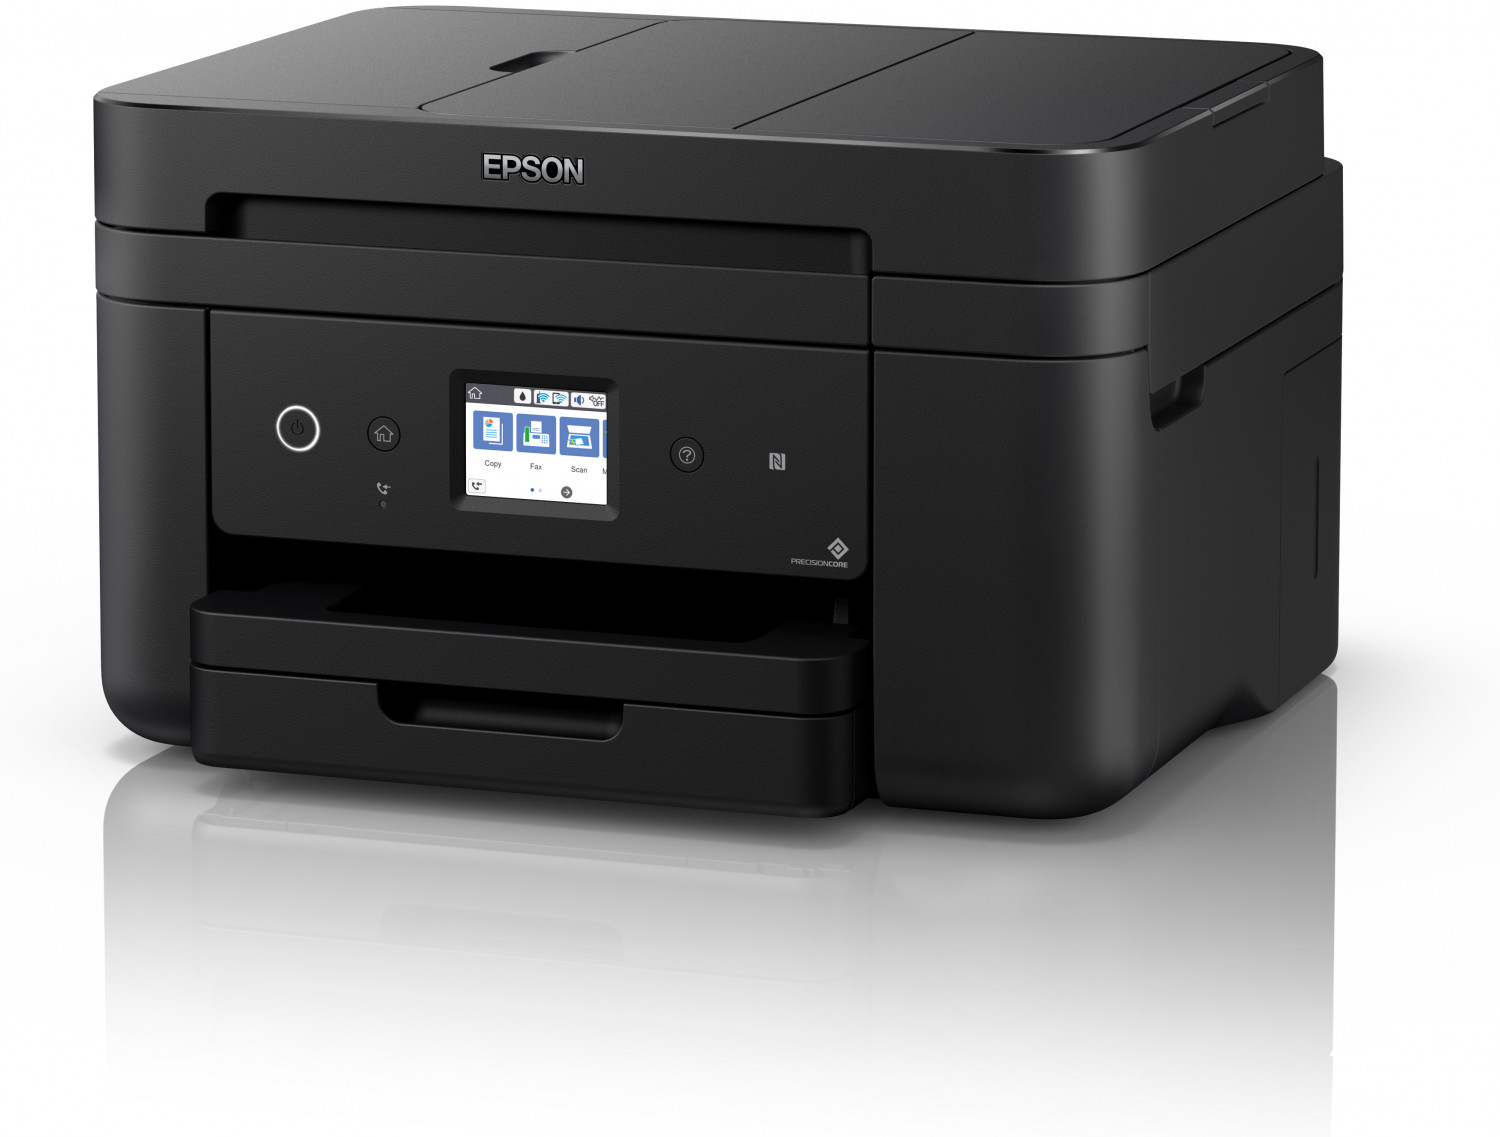 Step-by-step Driver Epson Printer WF-2860 Fedora Installation - Featured